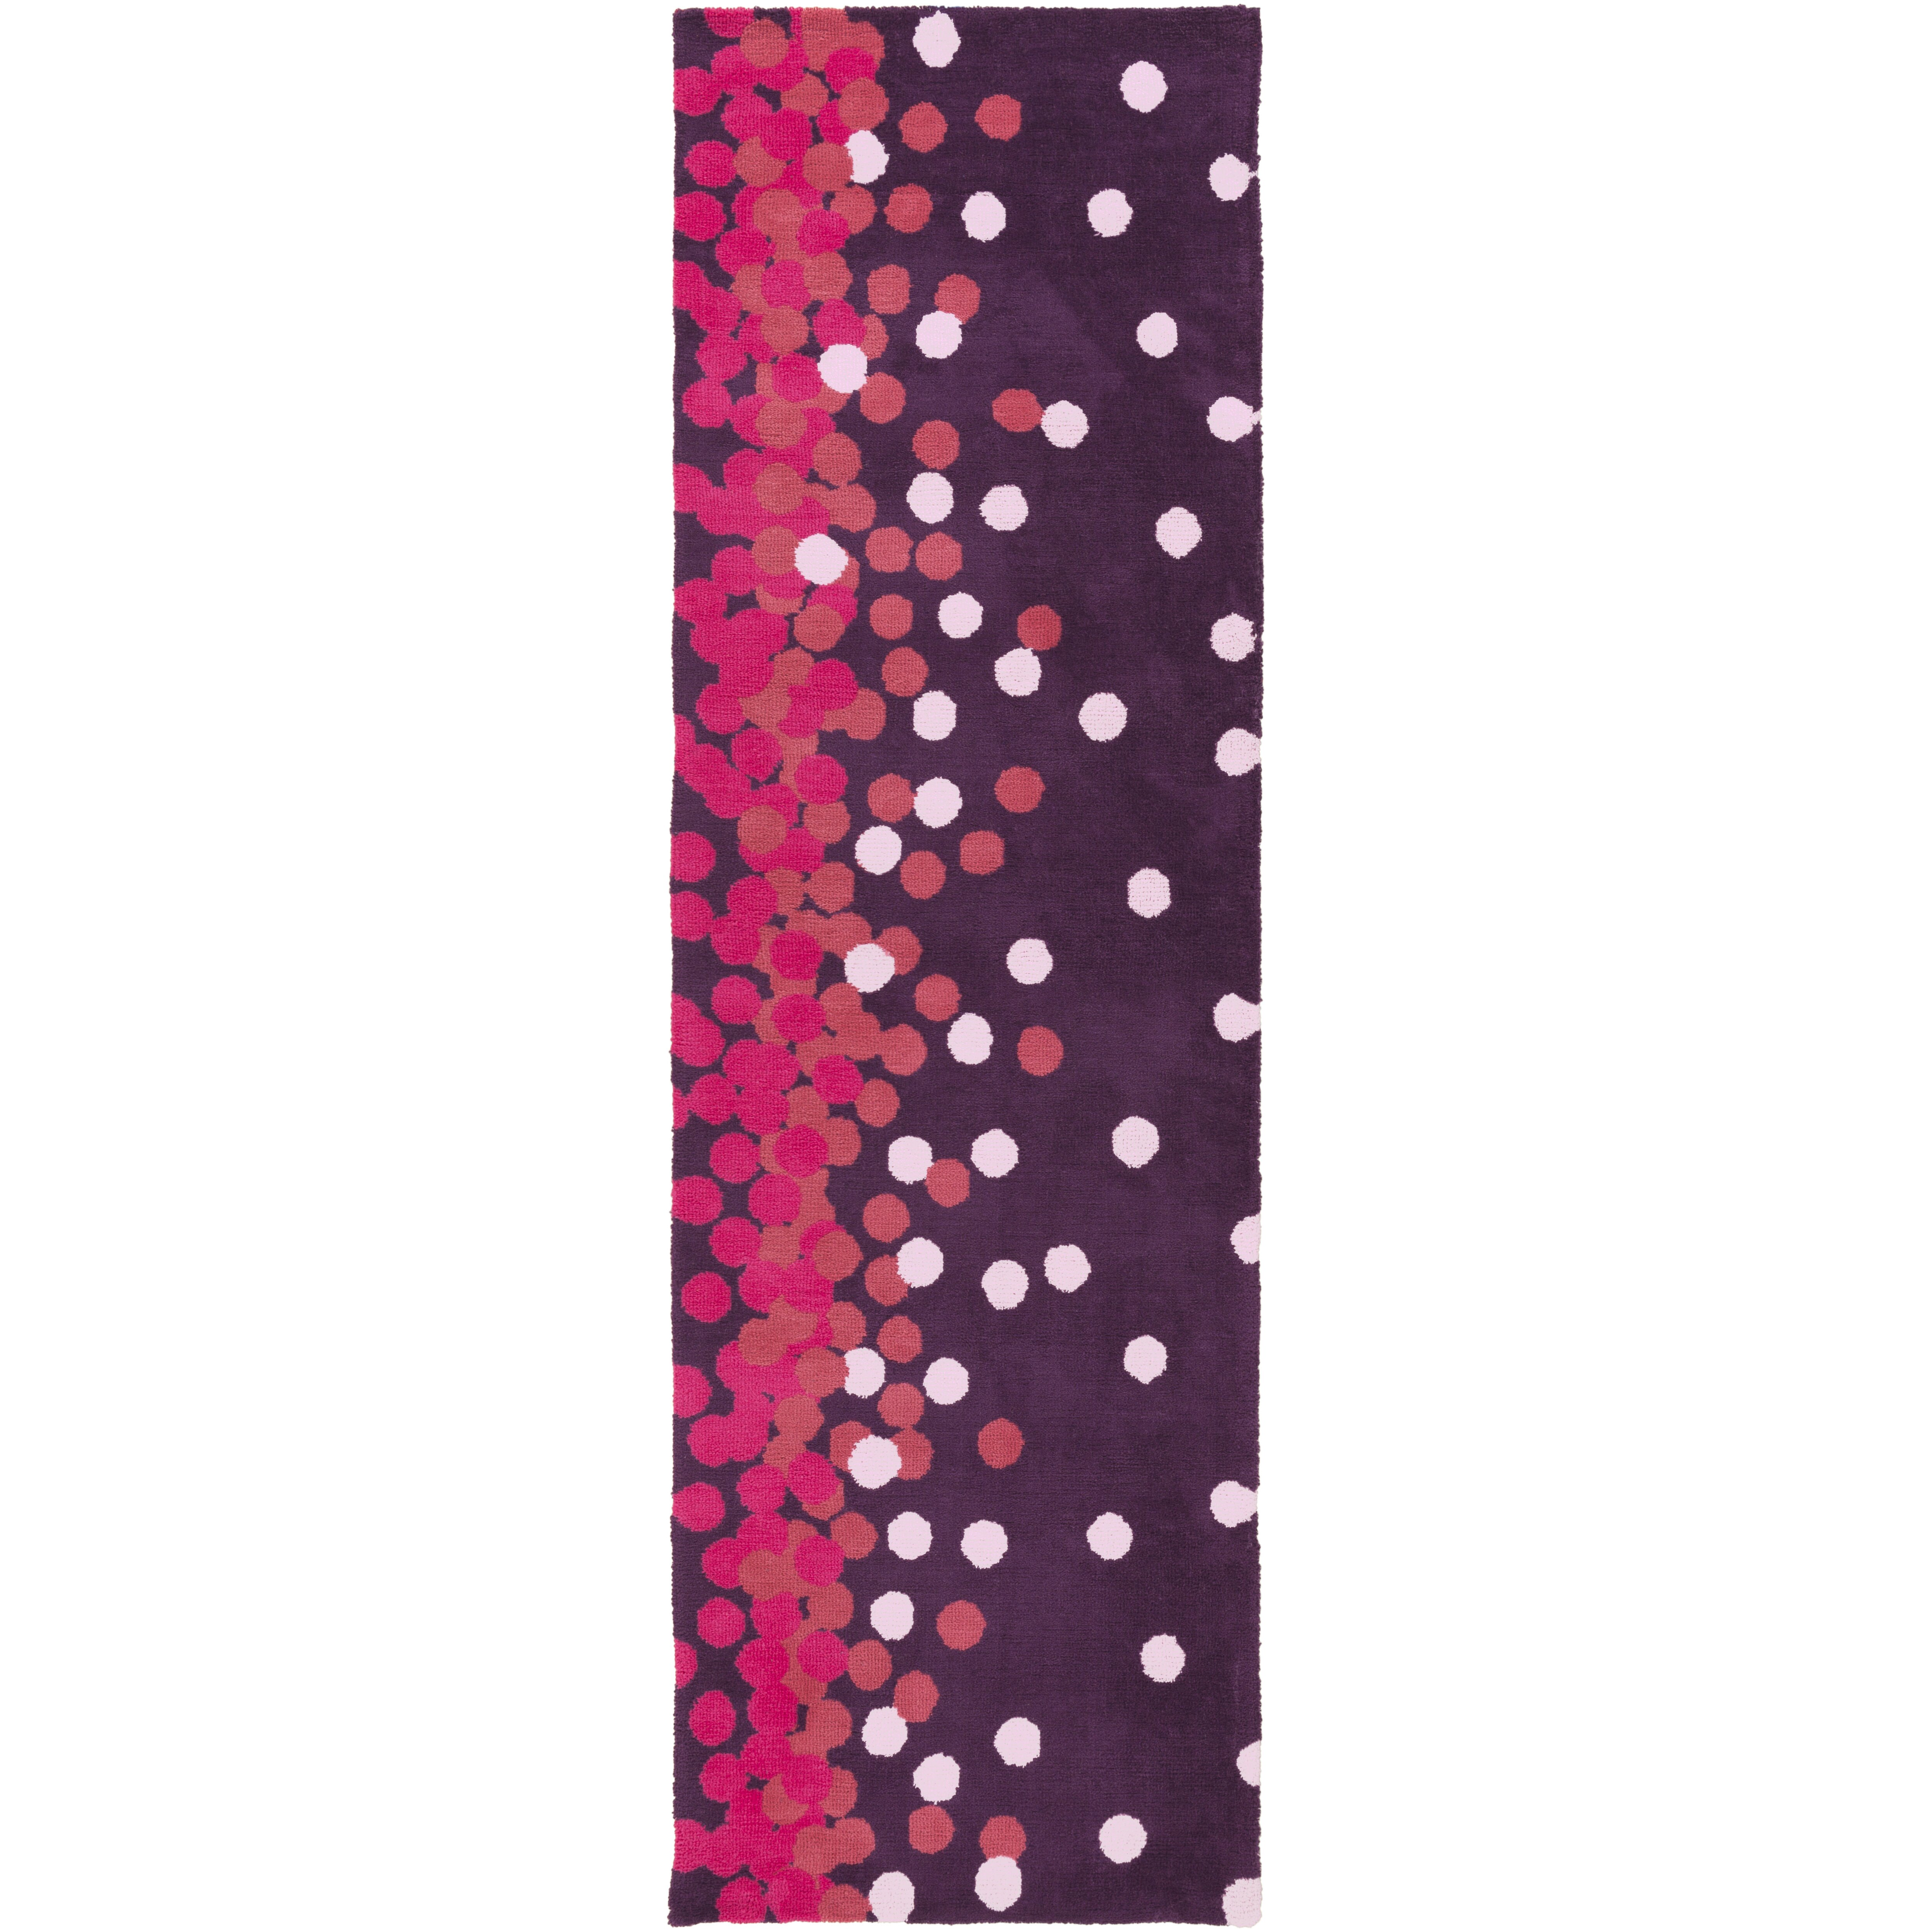 Xl Purple Rug: Surya Abigail Purple/Pink Area Rug & Reviews